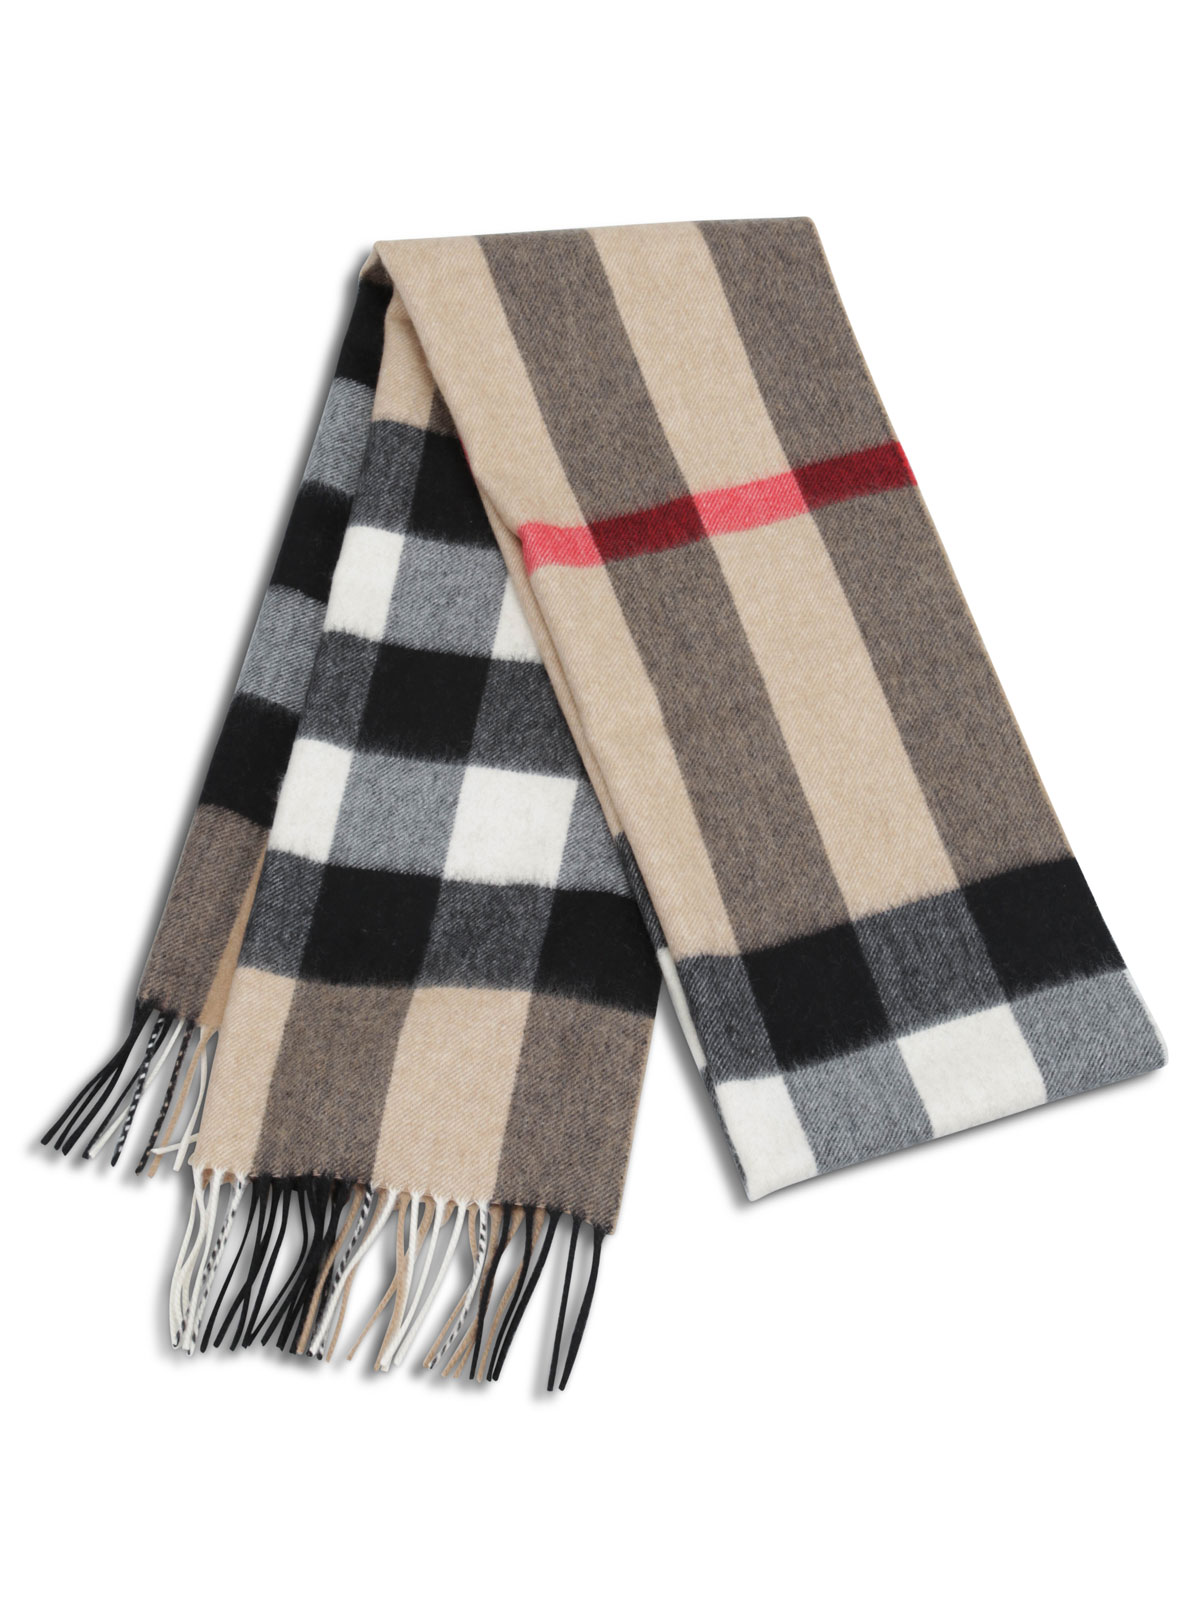 burberry scarf outlet online 6y8o  burberry scarf outlet